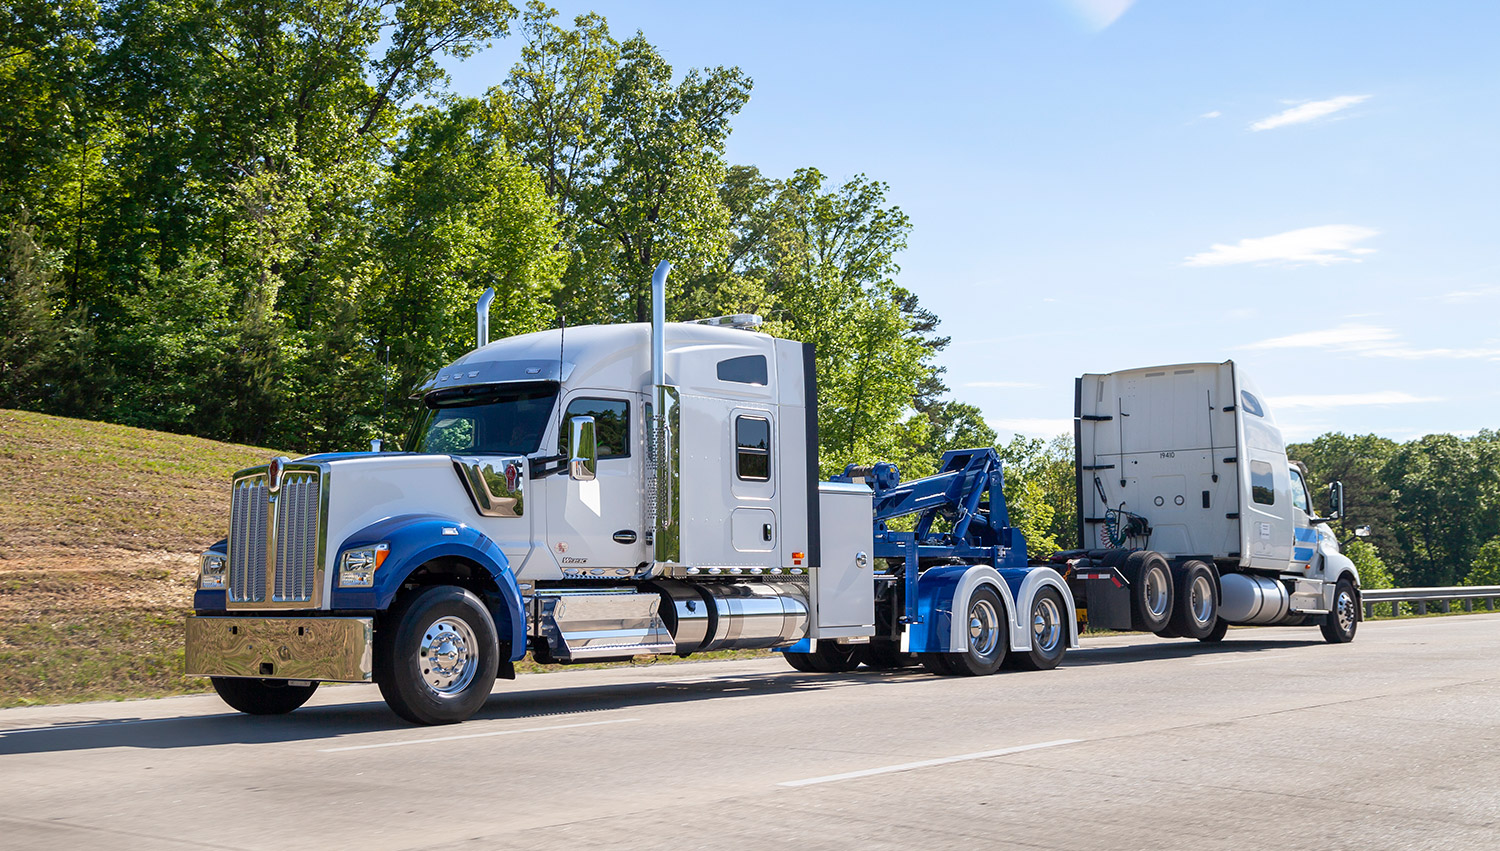 The Holmes detachable towing unit is idea for over the road long hauls.